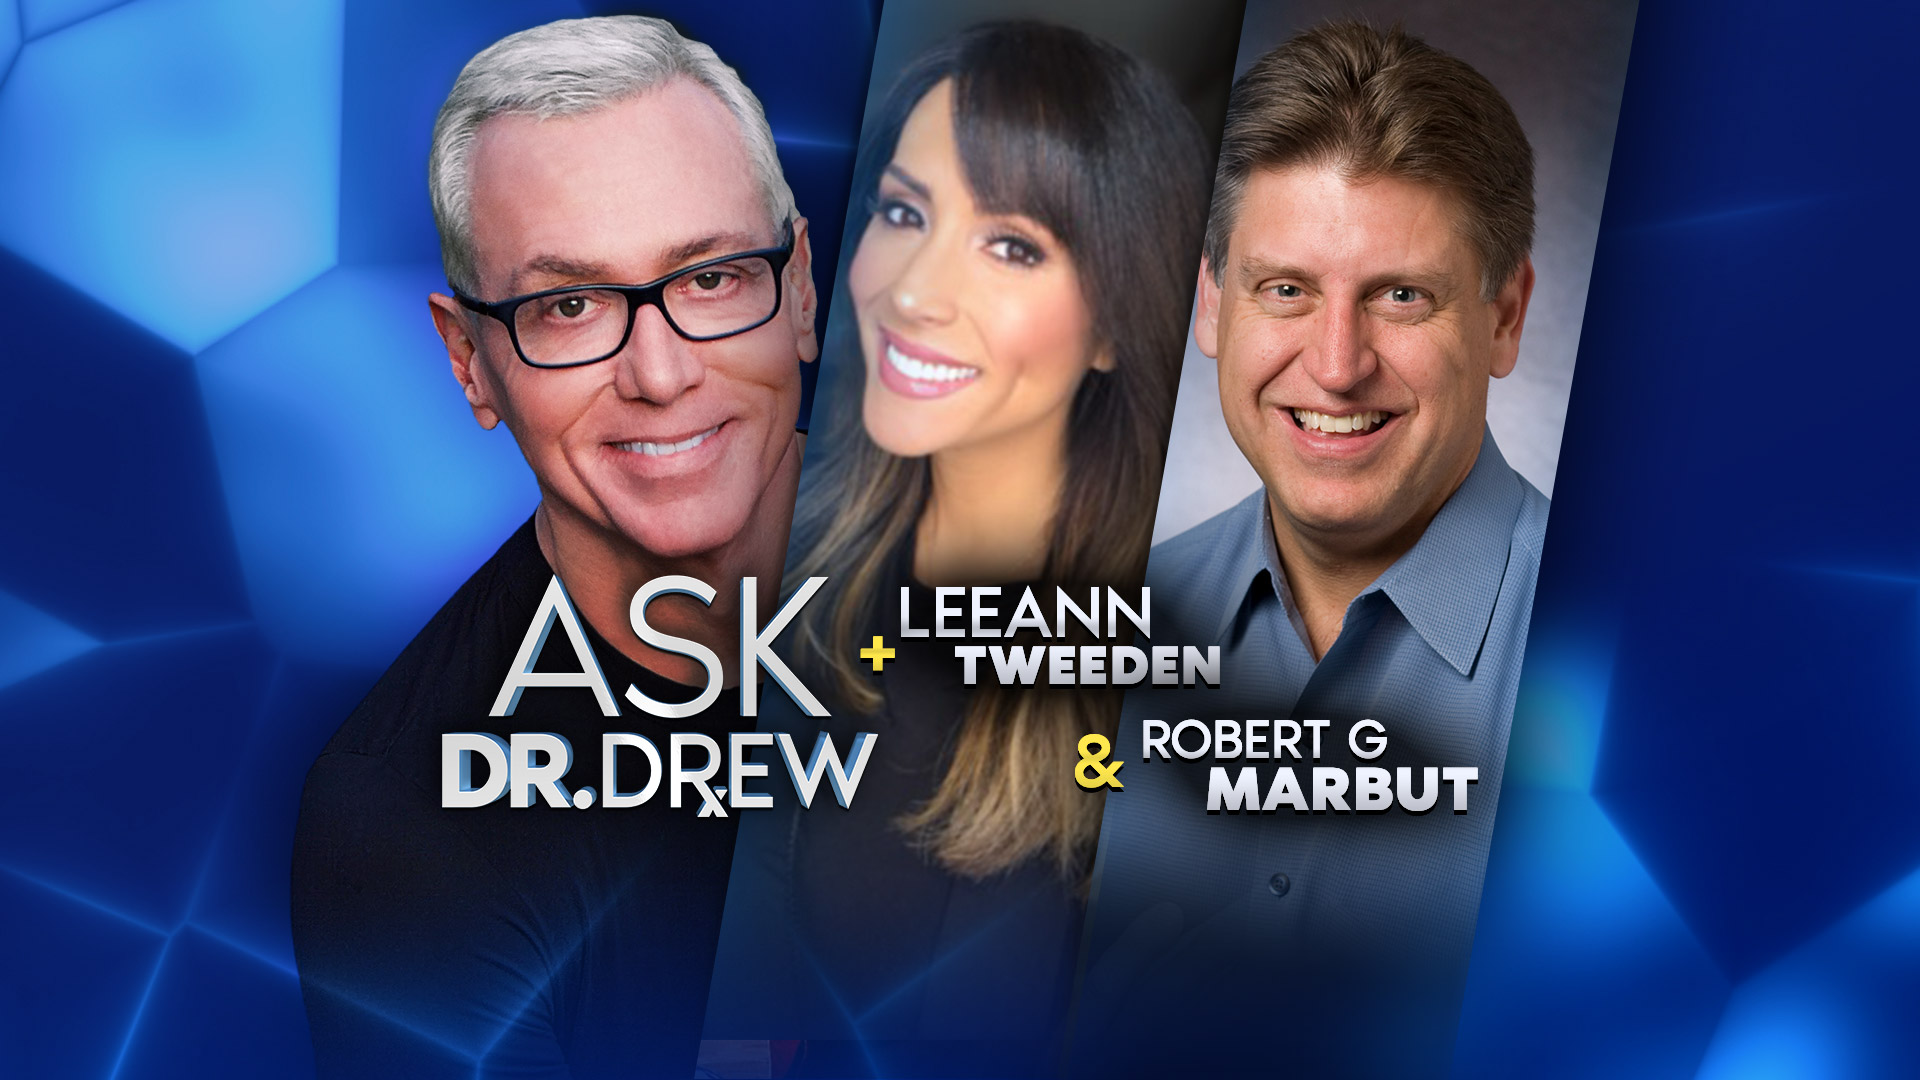 Ask Dr. Drew – Robert Marbut and Leeann Tweeden – Episode 8